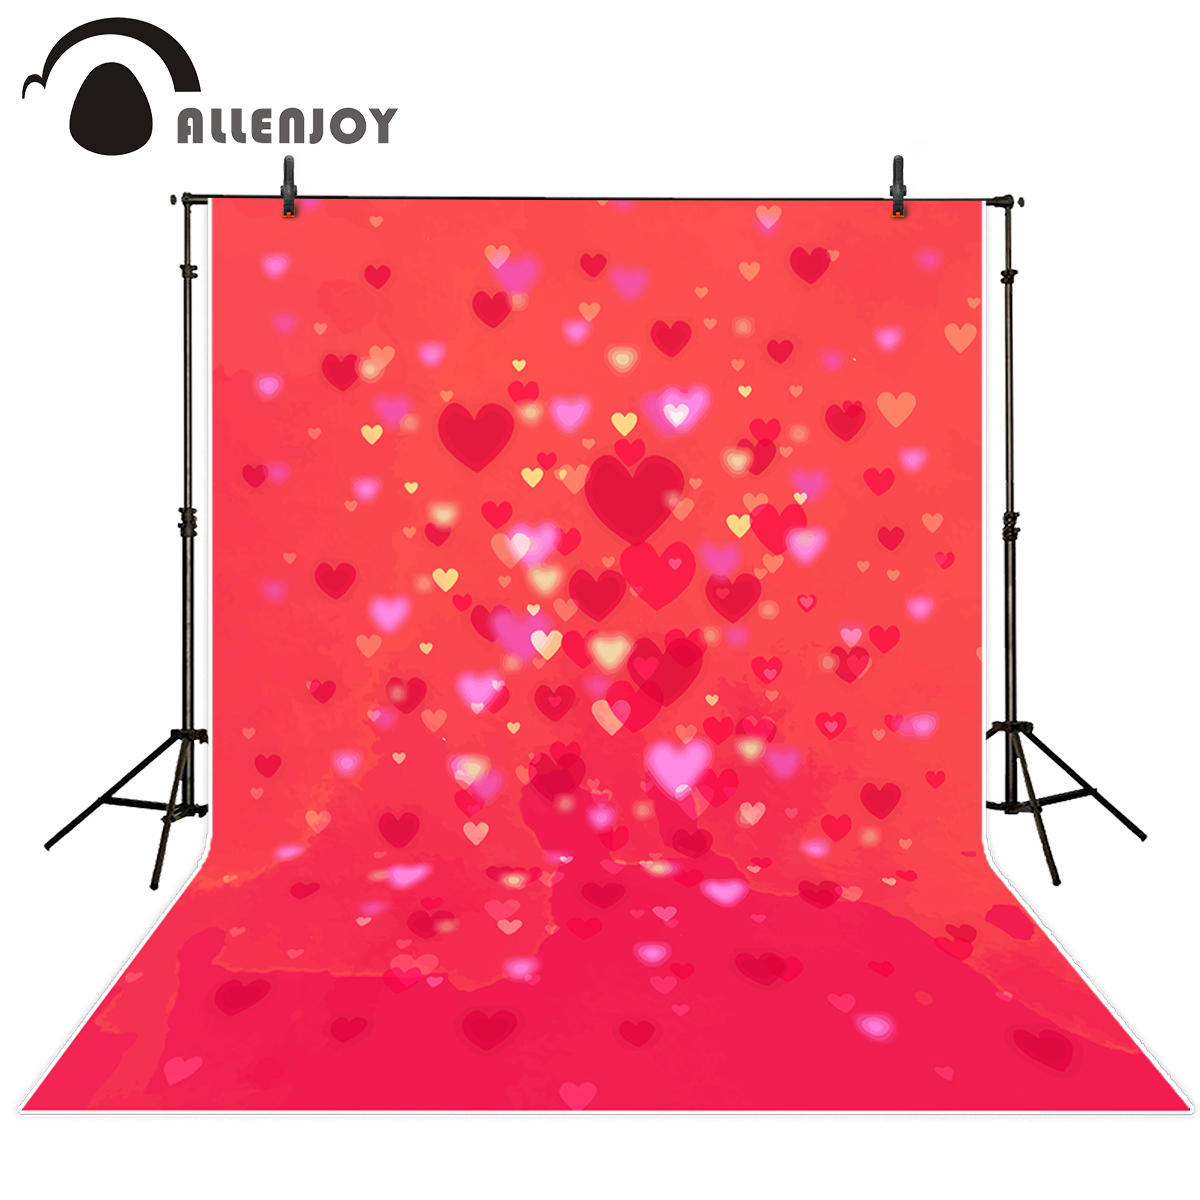 Allenjoy photography backdrops Valentine's Day love hearts pink bokeh shiny wedding photo background vinyl for photo studio allenjoy photography backdrops love pink romantic background photography wedding backdrop for valentine s day